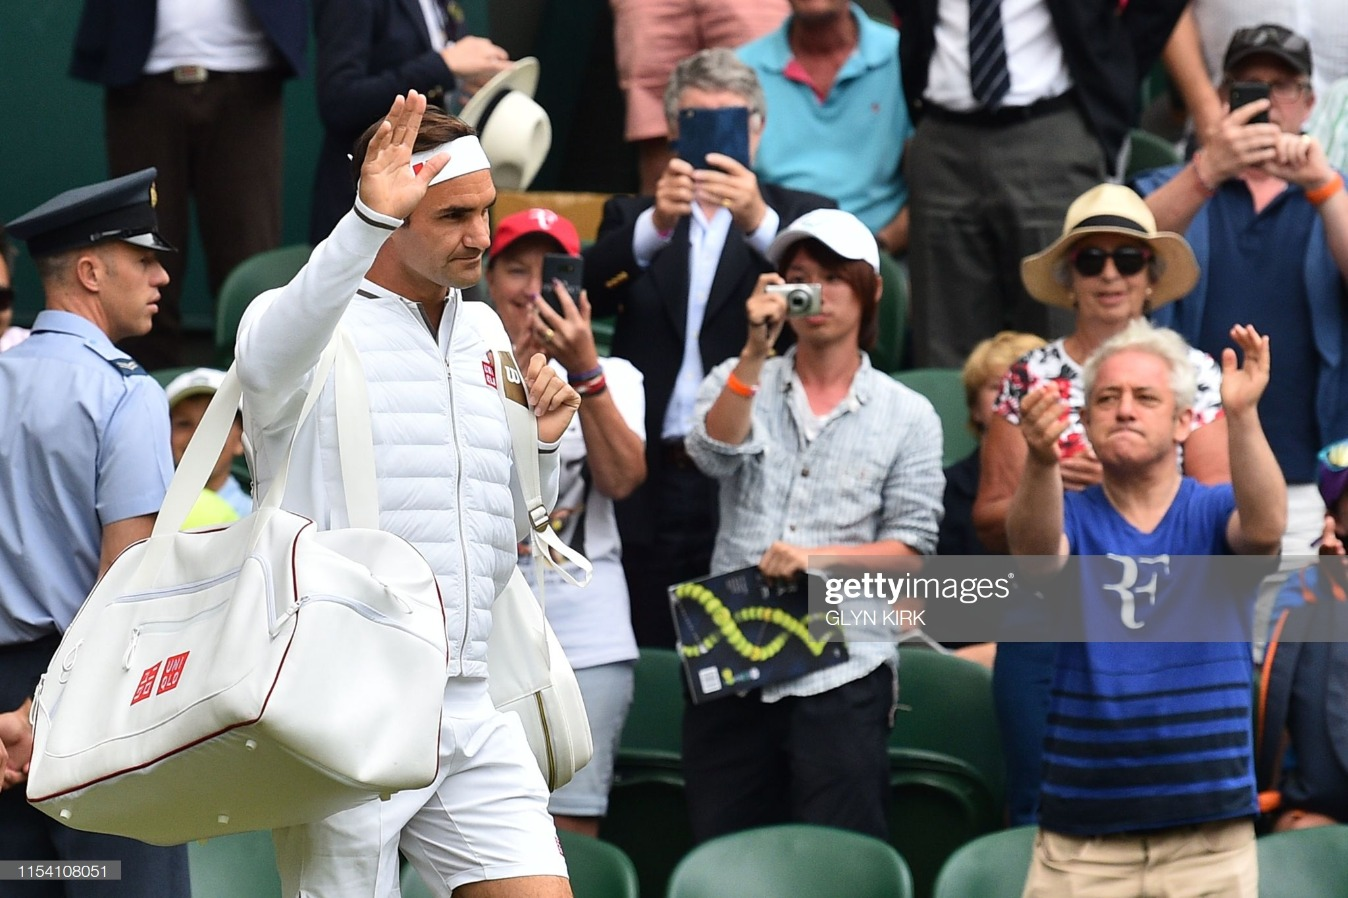 TENNIS-GBR-WIMBLEDON-VIP : News Photo